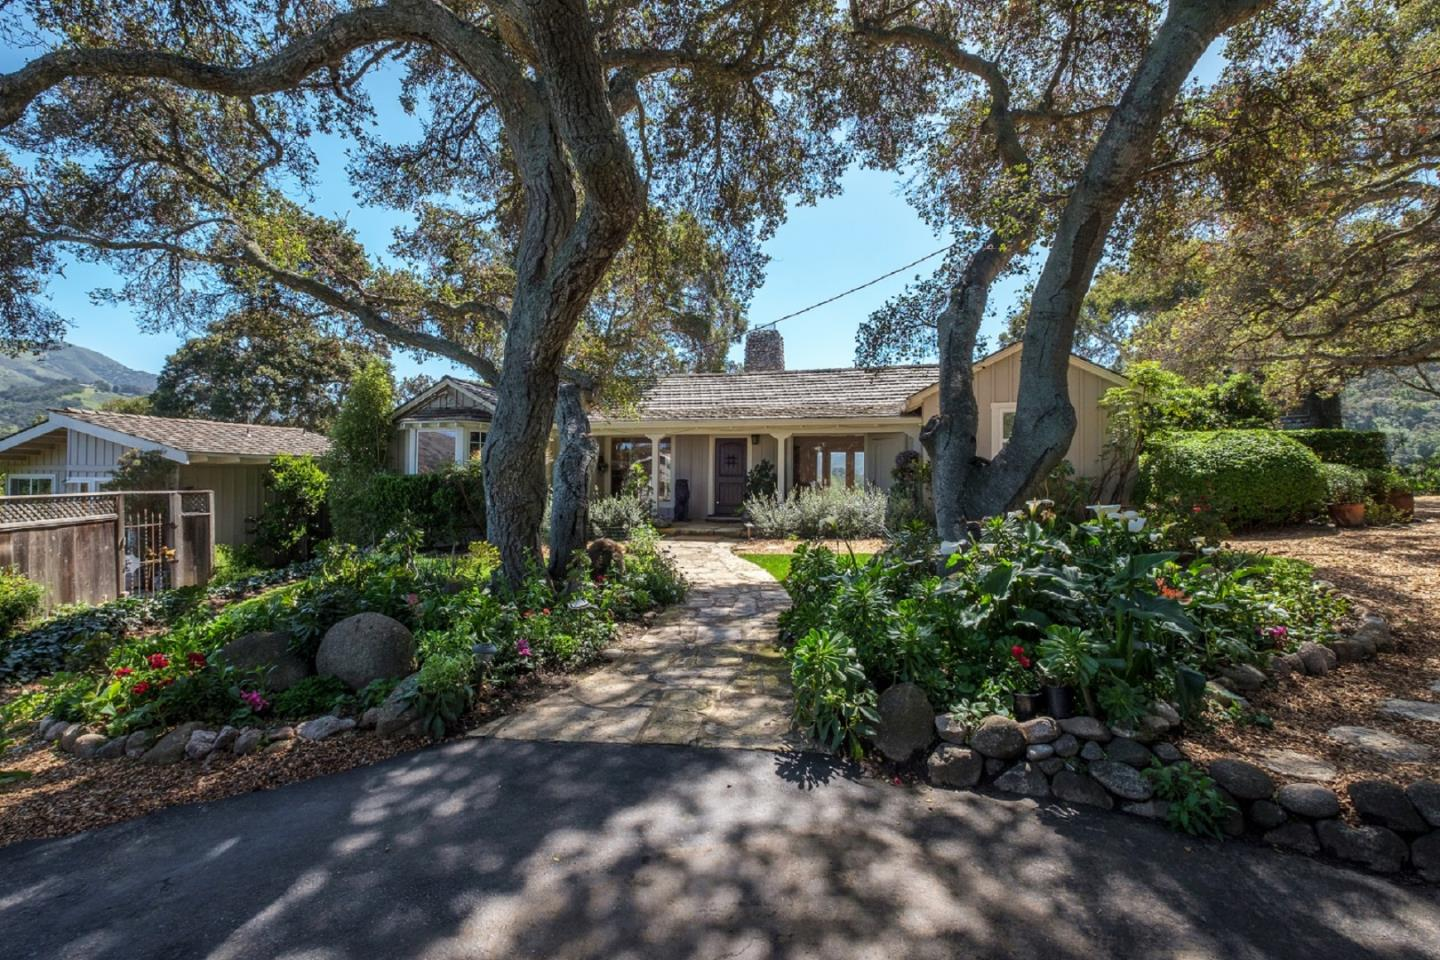 Property for sale at 35 W. Garzas RD, Carmel Valley,  CA 93924